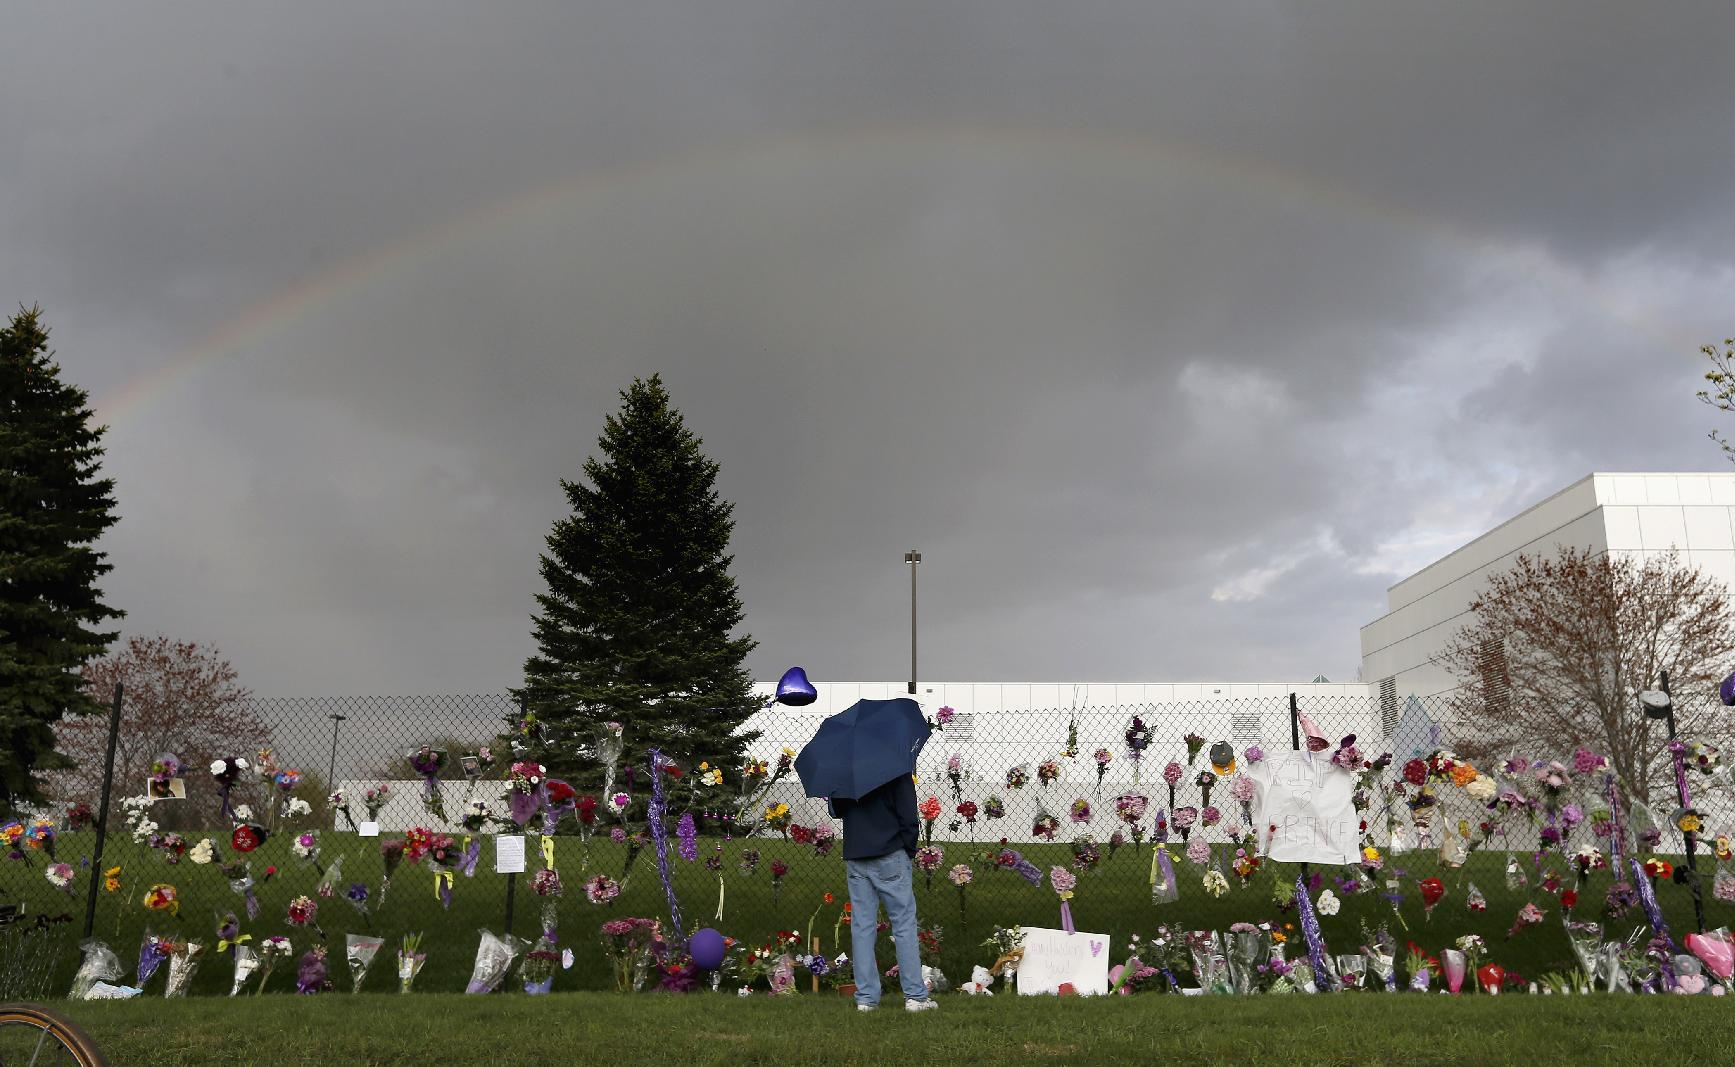 Still no will, but work to settle Prince estate forges ahead